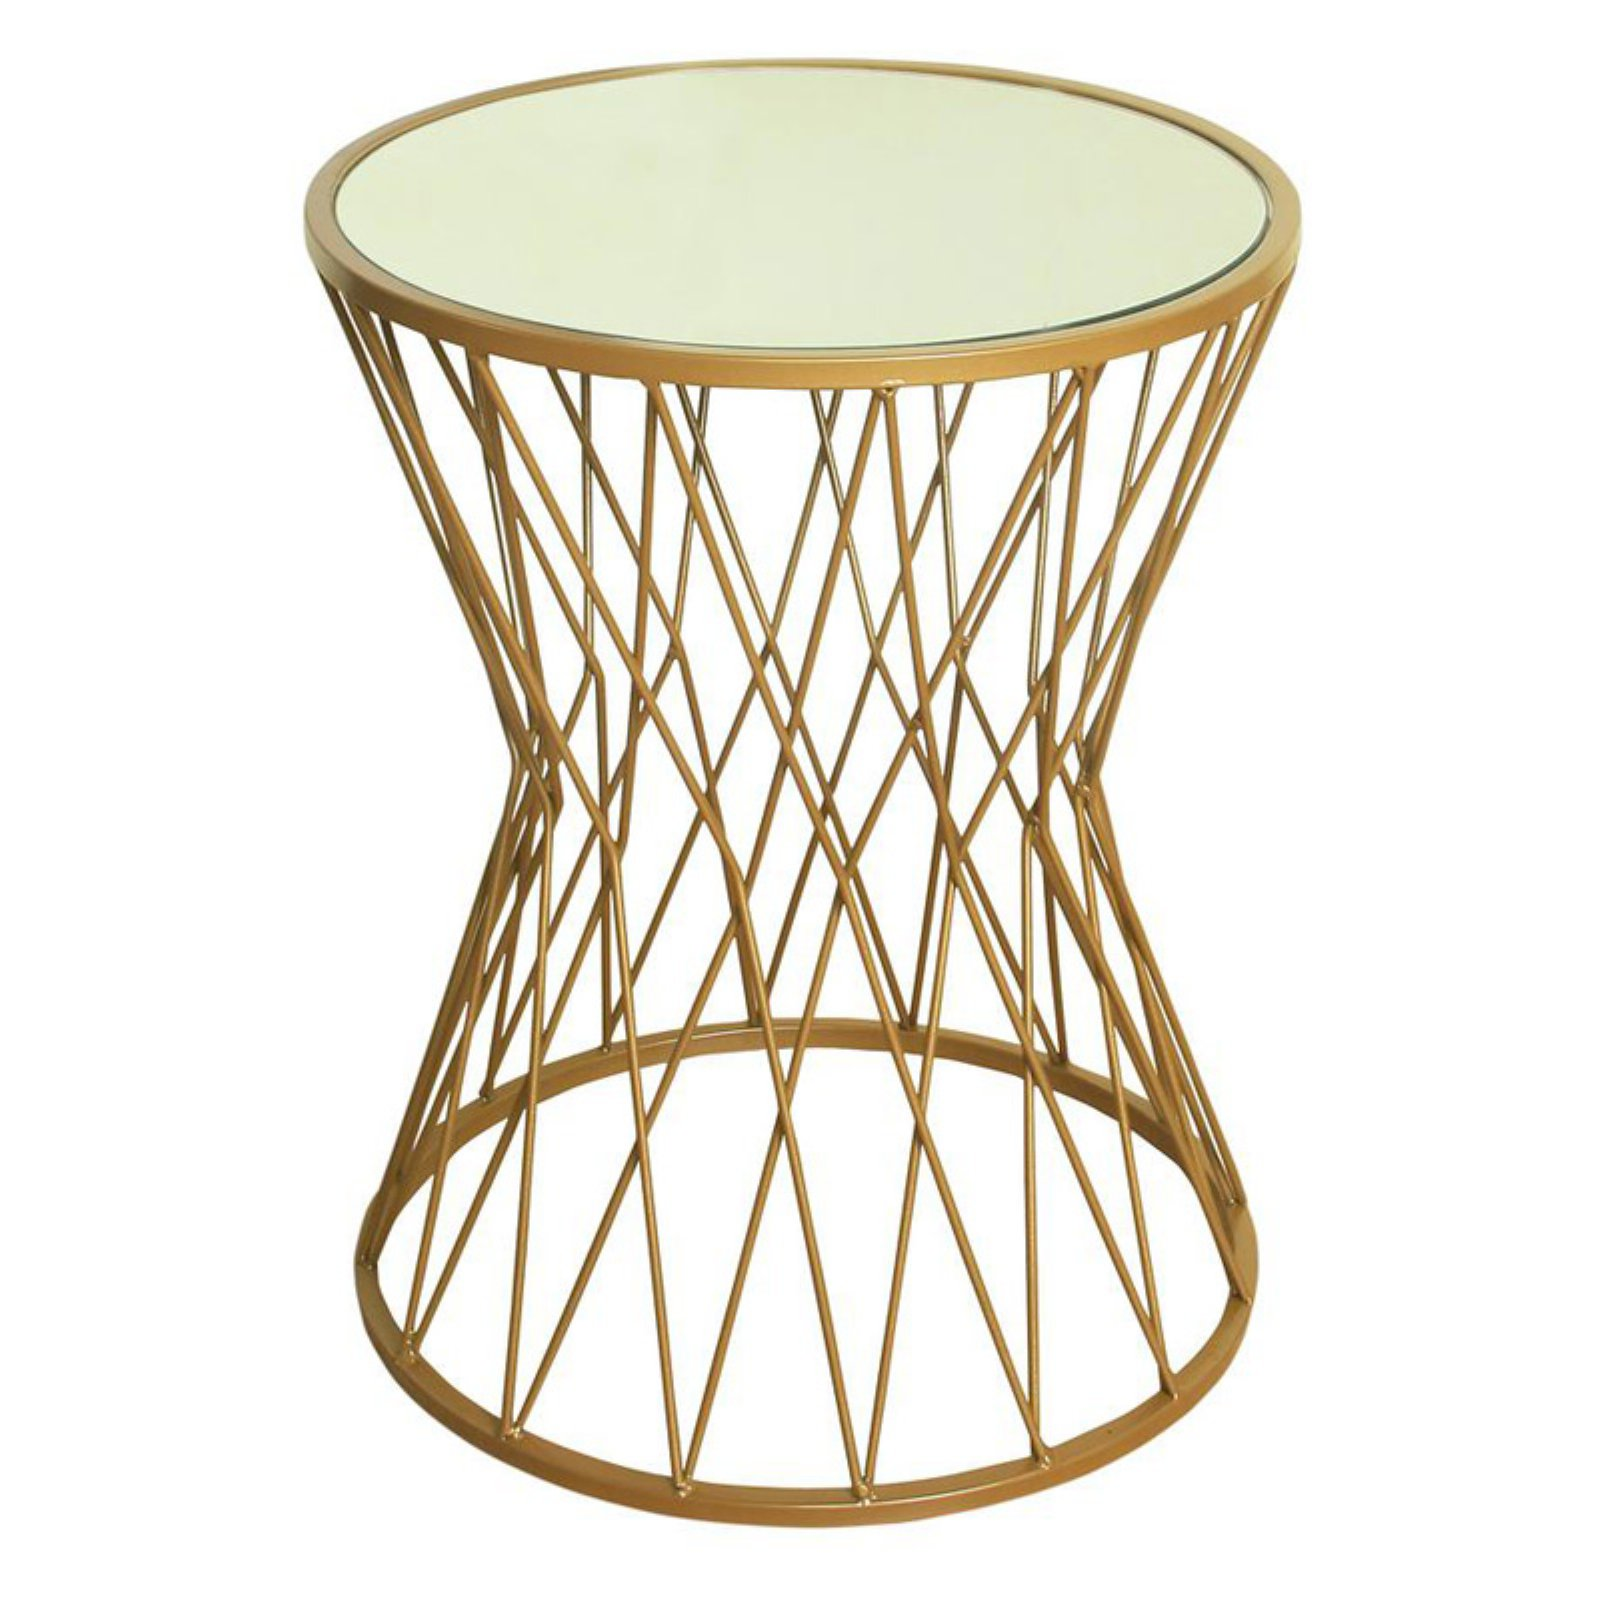 homepop hourglass metal accent table gold mirror top inuse outdoor ture nautical porch lights shelby chest industrial bedside round mid century coffee furniture seat covers black